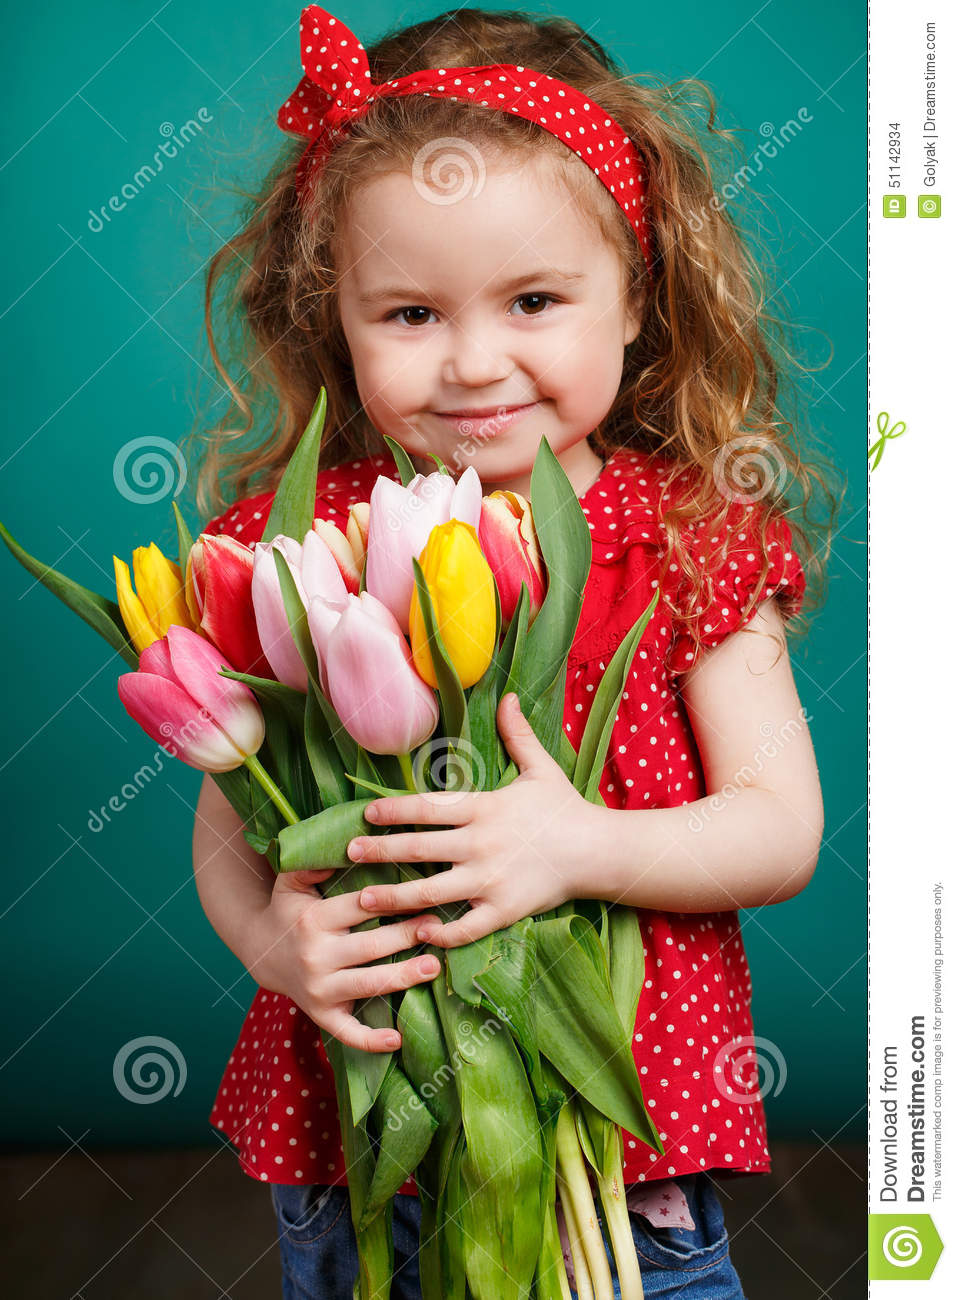 Beautiful little girl with a big bouquet of tulips.